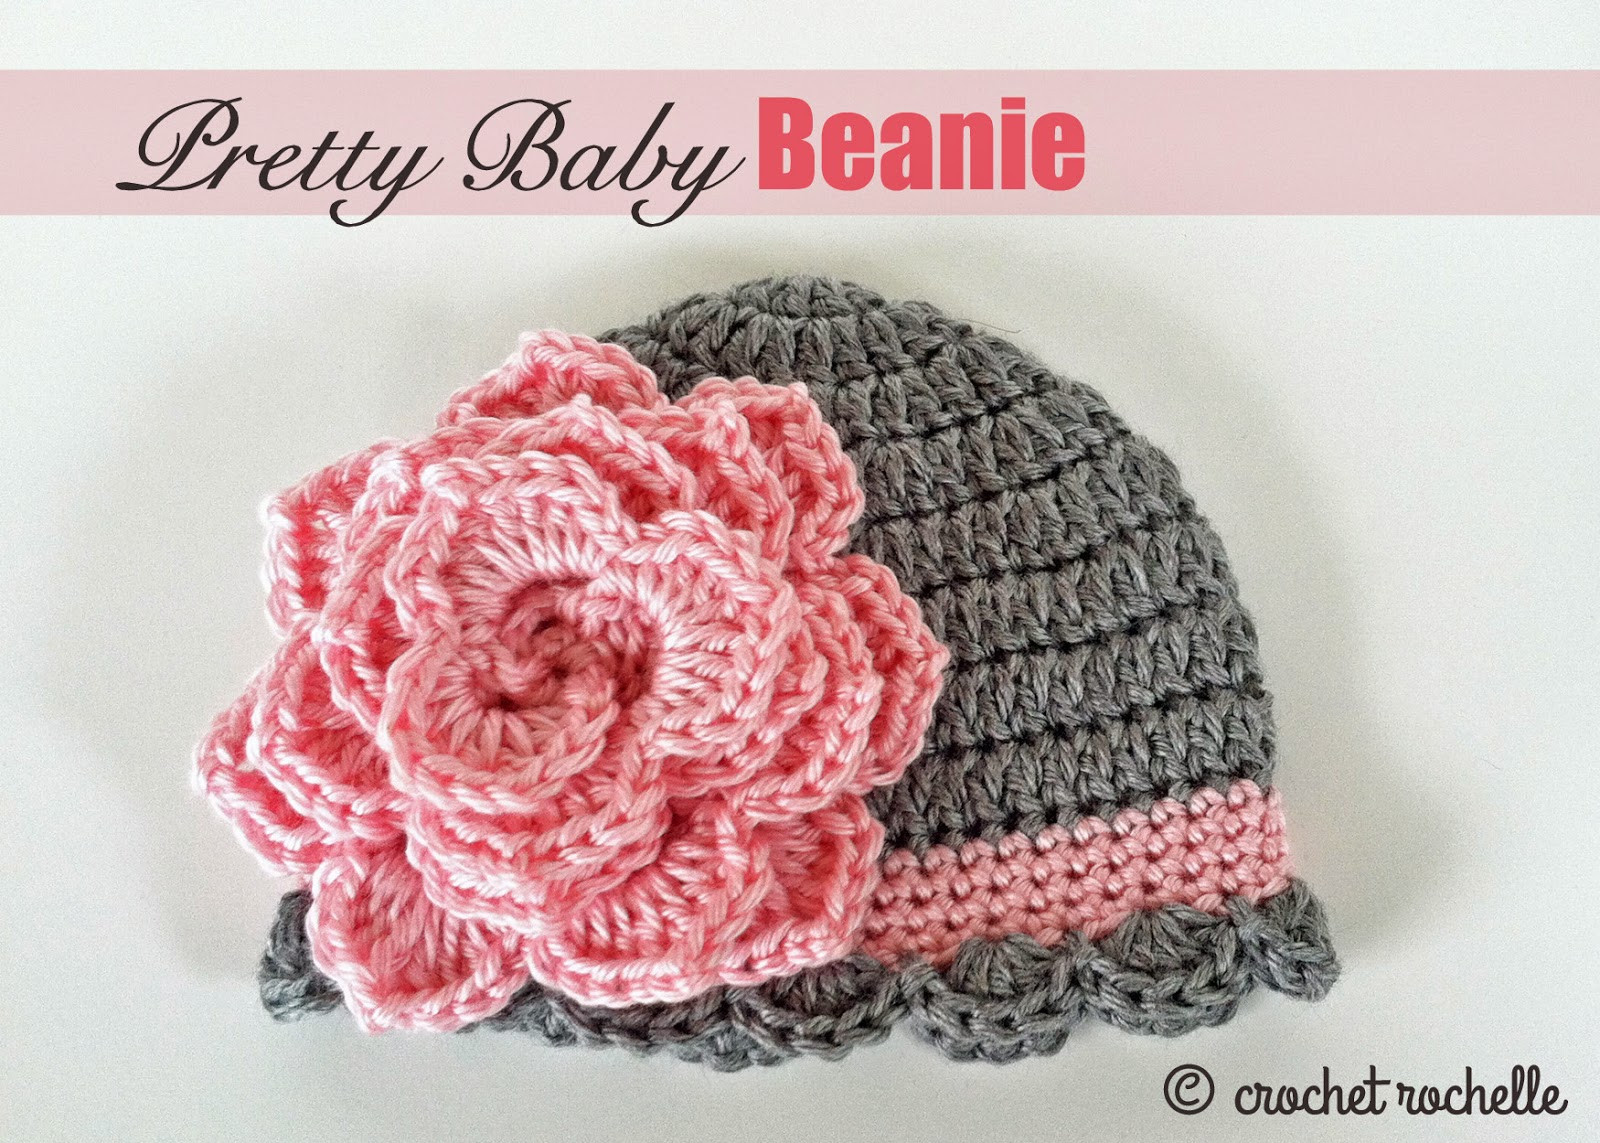 Free Crochet Baby Hat Patterns Awesome Crochet Rochelle Pretty Baby Beanie Of Adorable 48 Pics Free Crochet Baby Hat Patterns